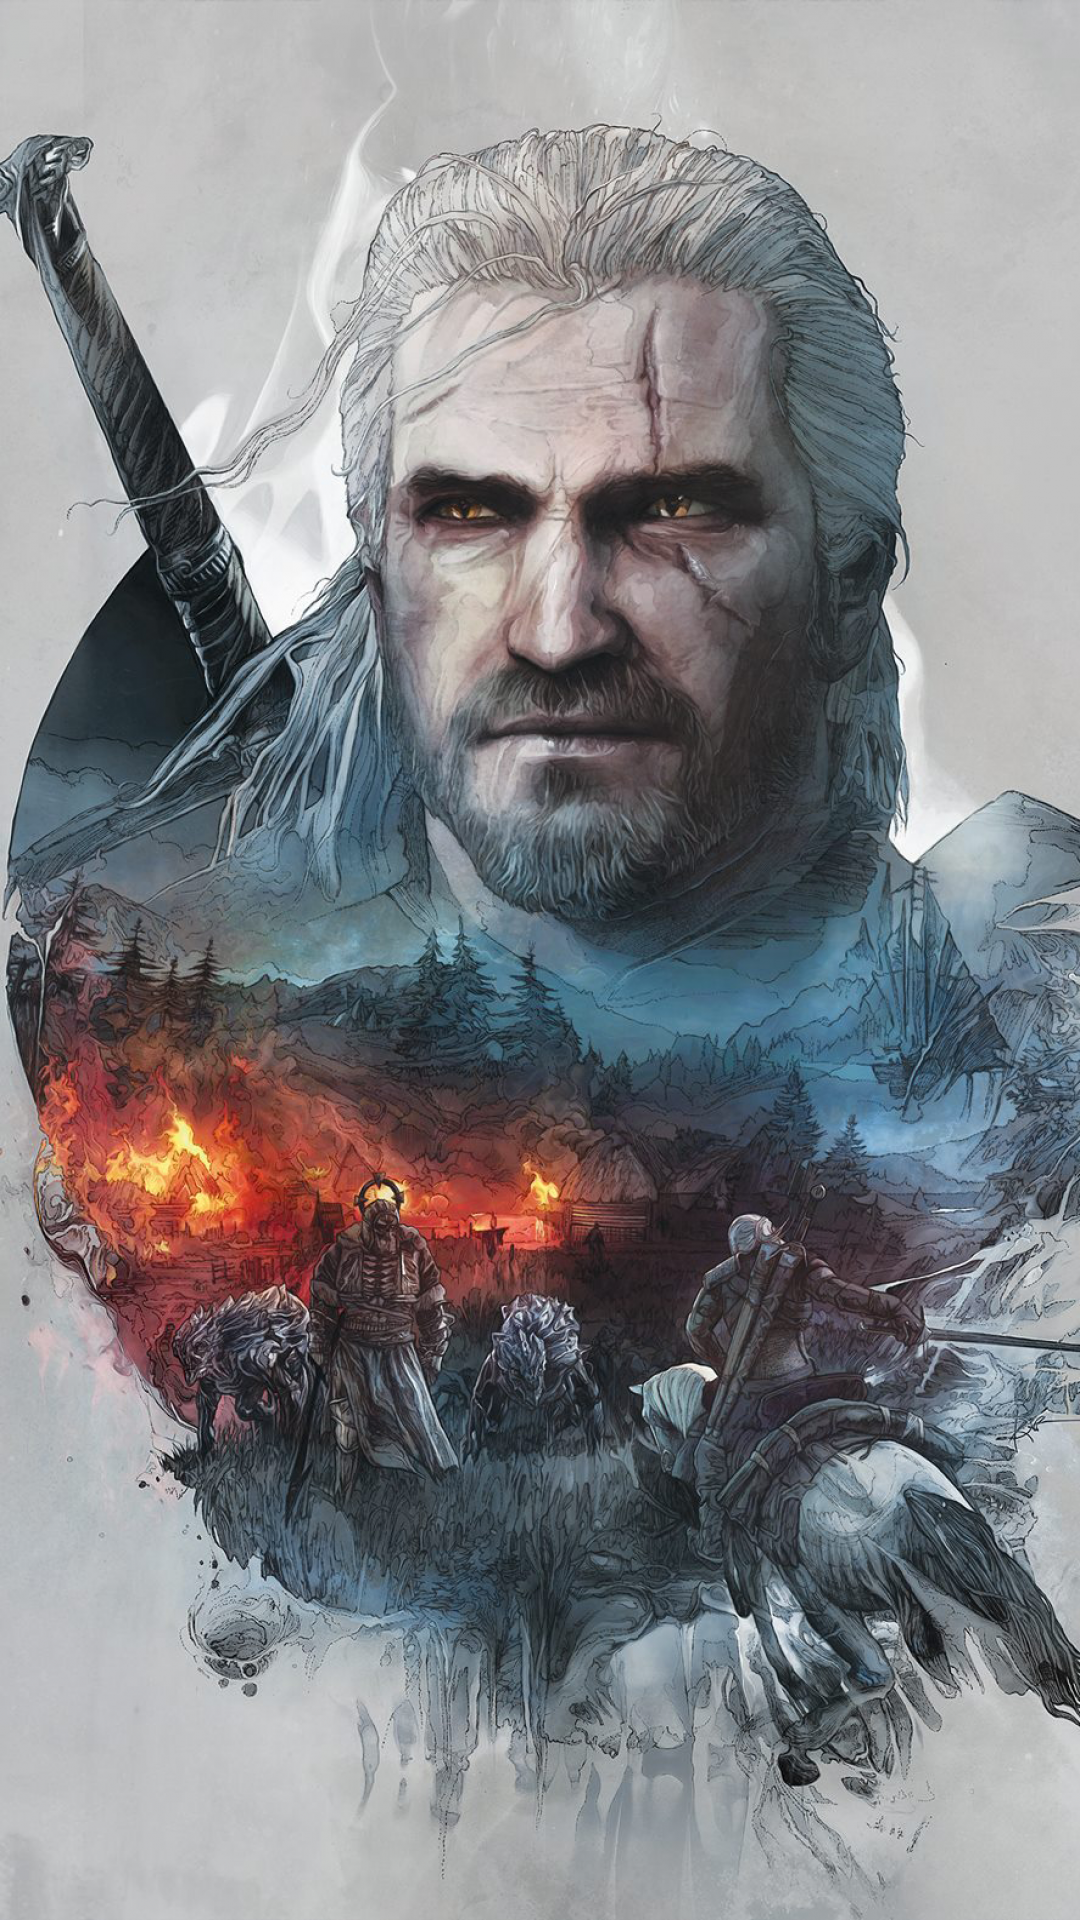 Video Gamethe Witcher 3 Wild Hunt 1080x1920 Wallpaper Id